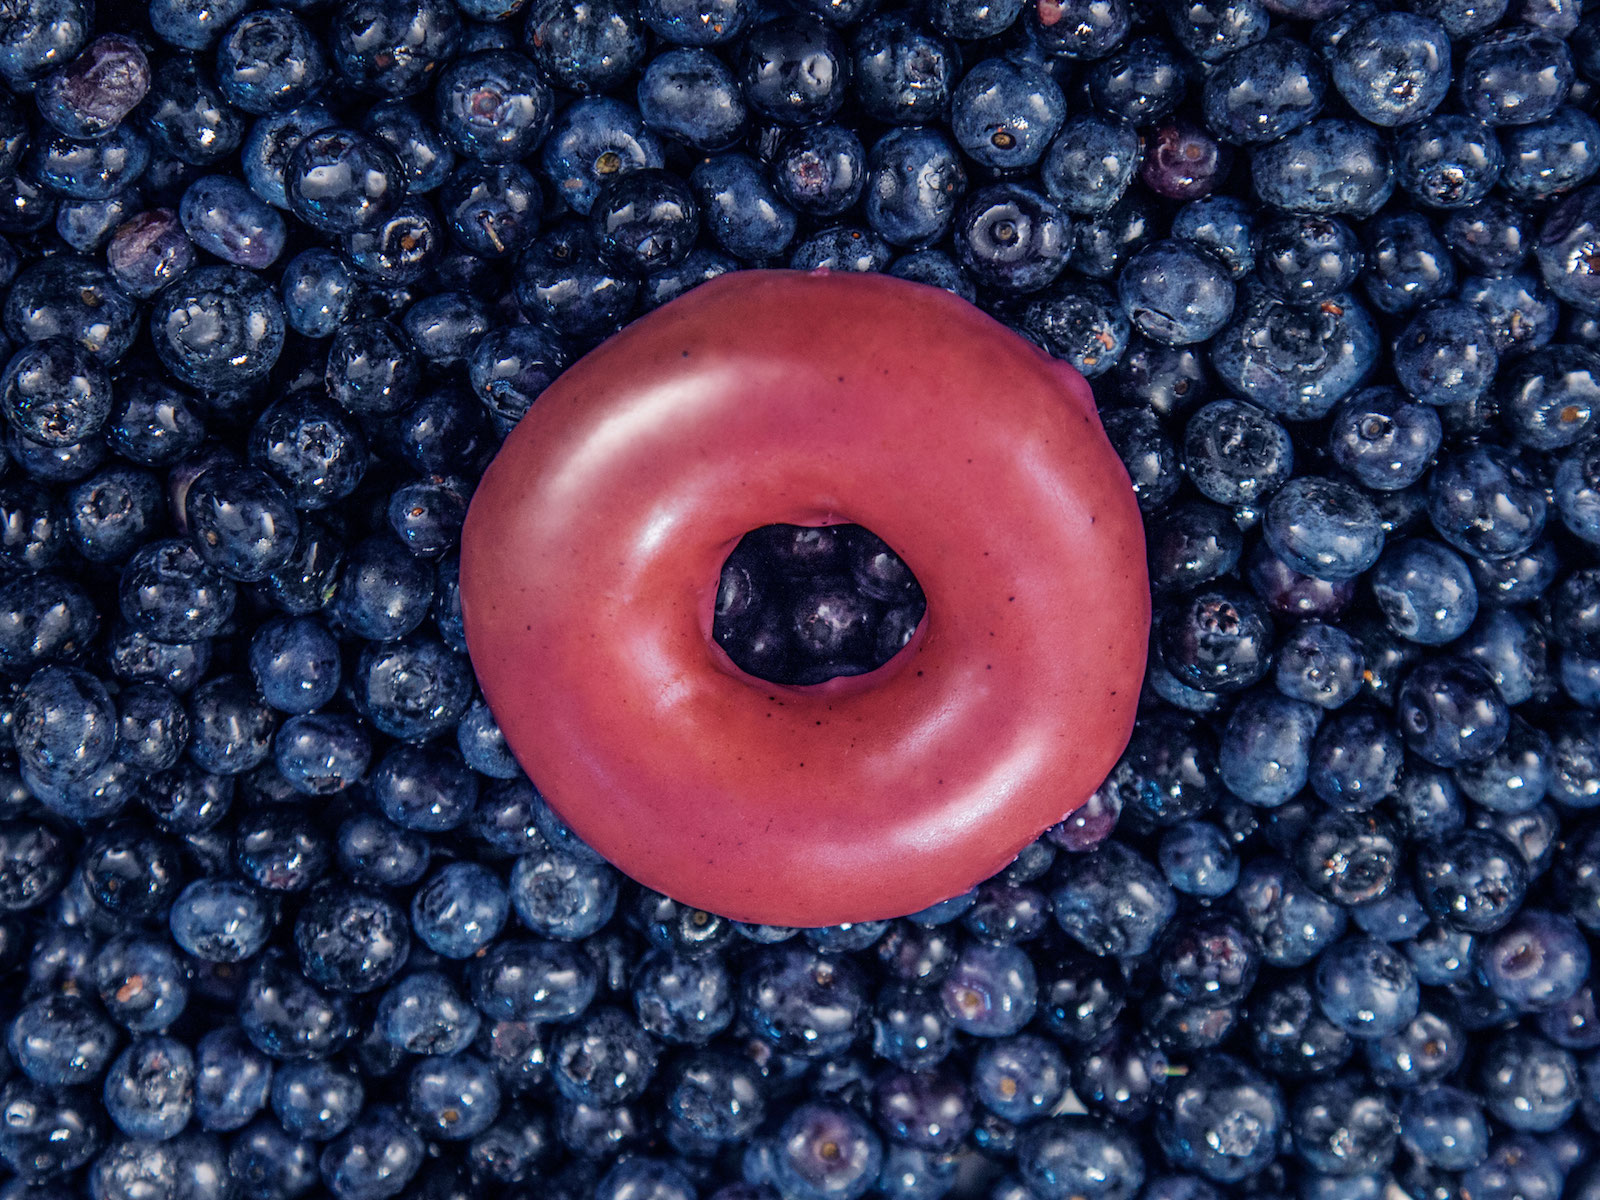 Krispy Kreme Gives Blueberry a Chance for One Week Only